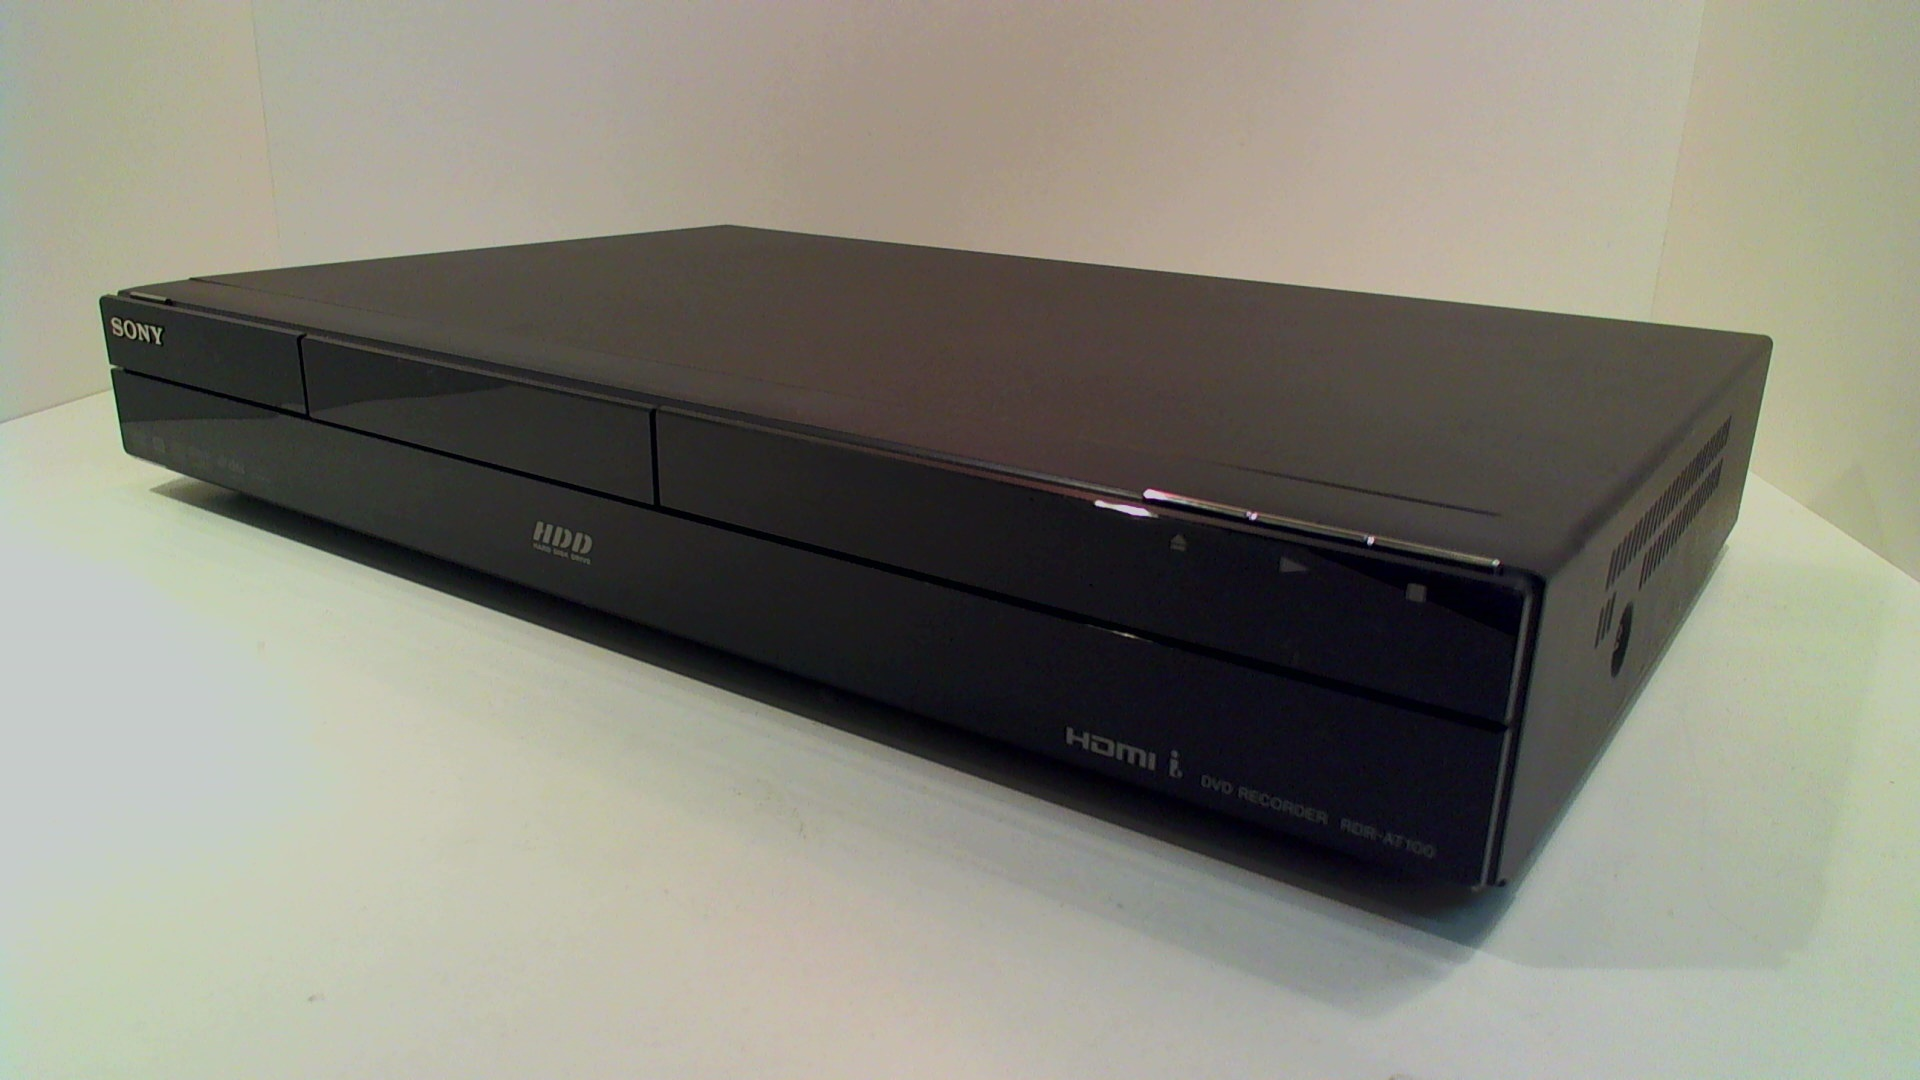 sony rdr at100 dvd recorder 160gb gebraucht artikel fernseher tv hifi an und verkauf. Black Bedroom Furniture Sets. Home Design Ideas